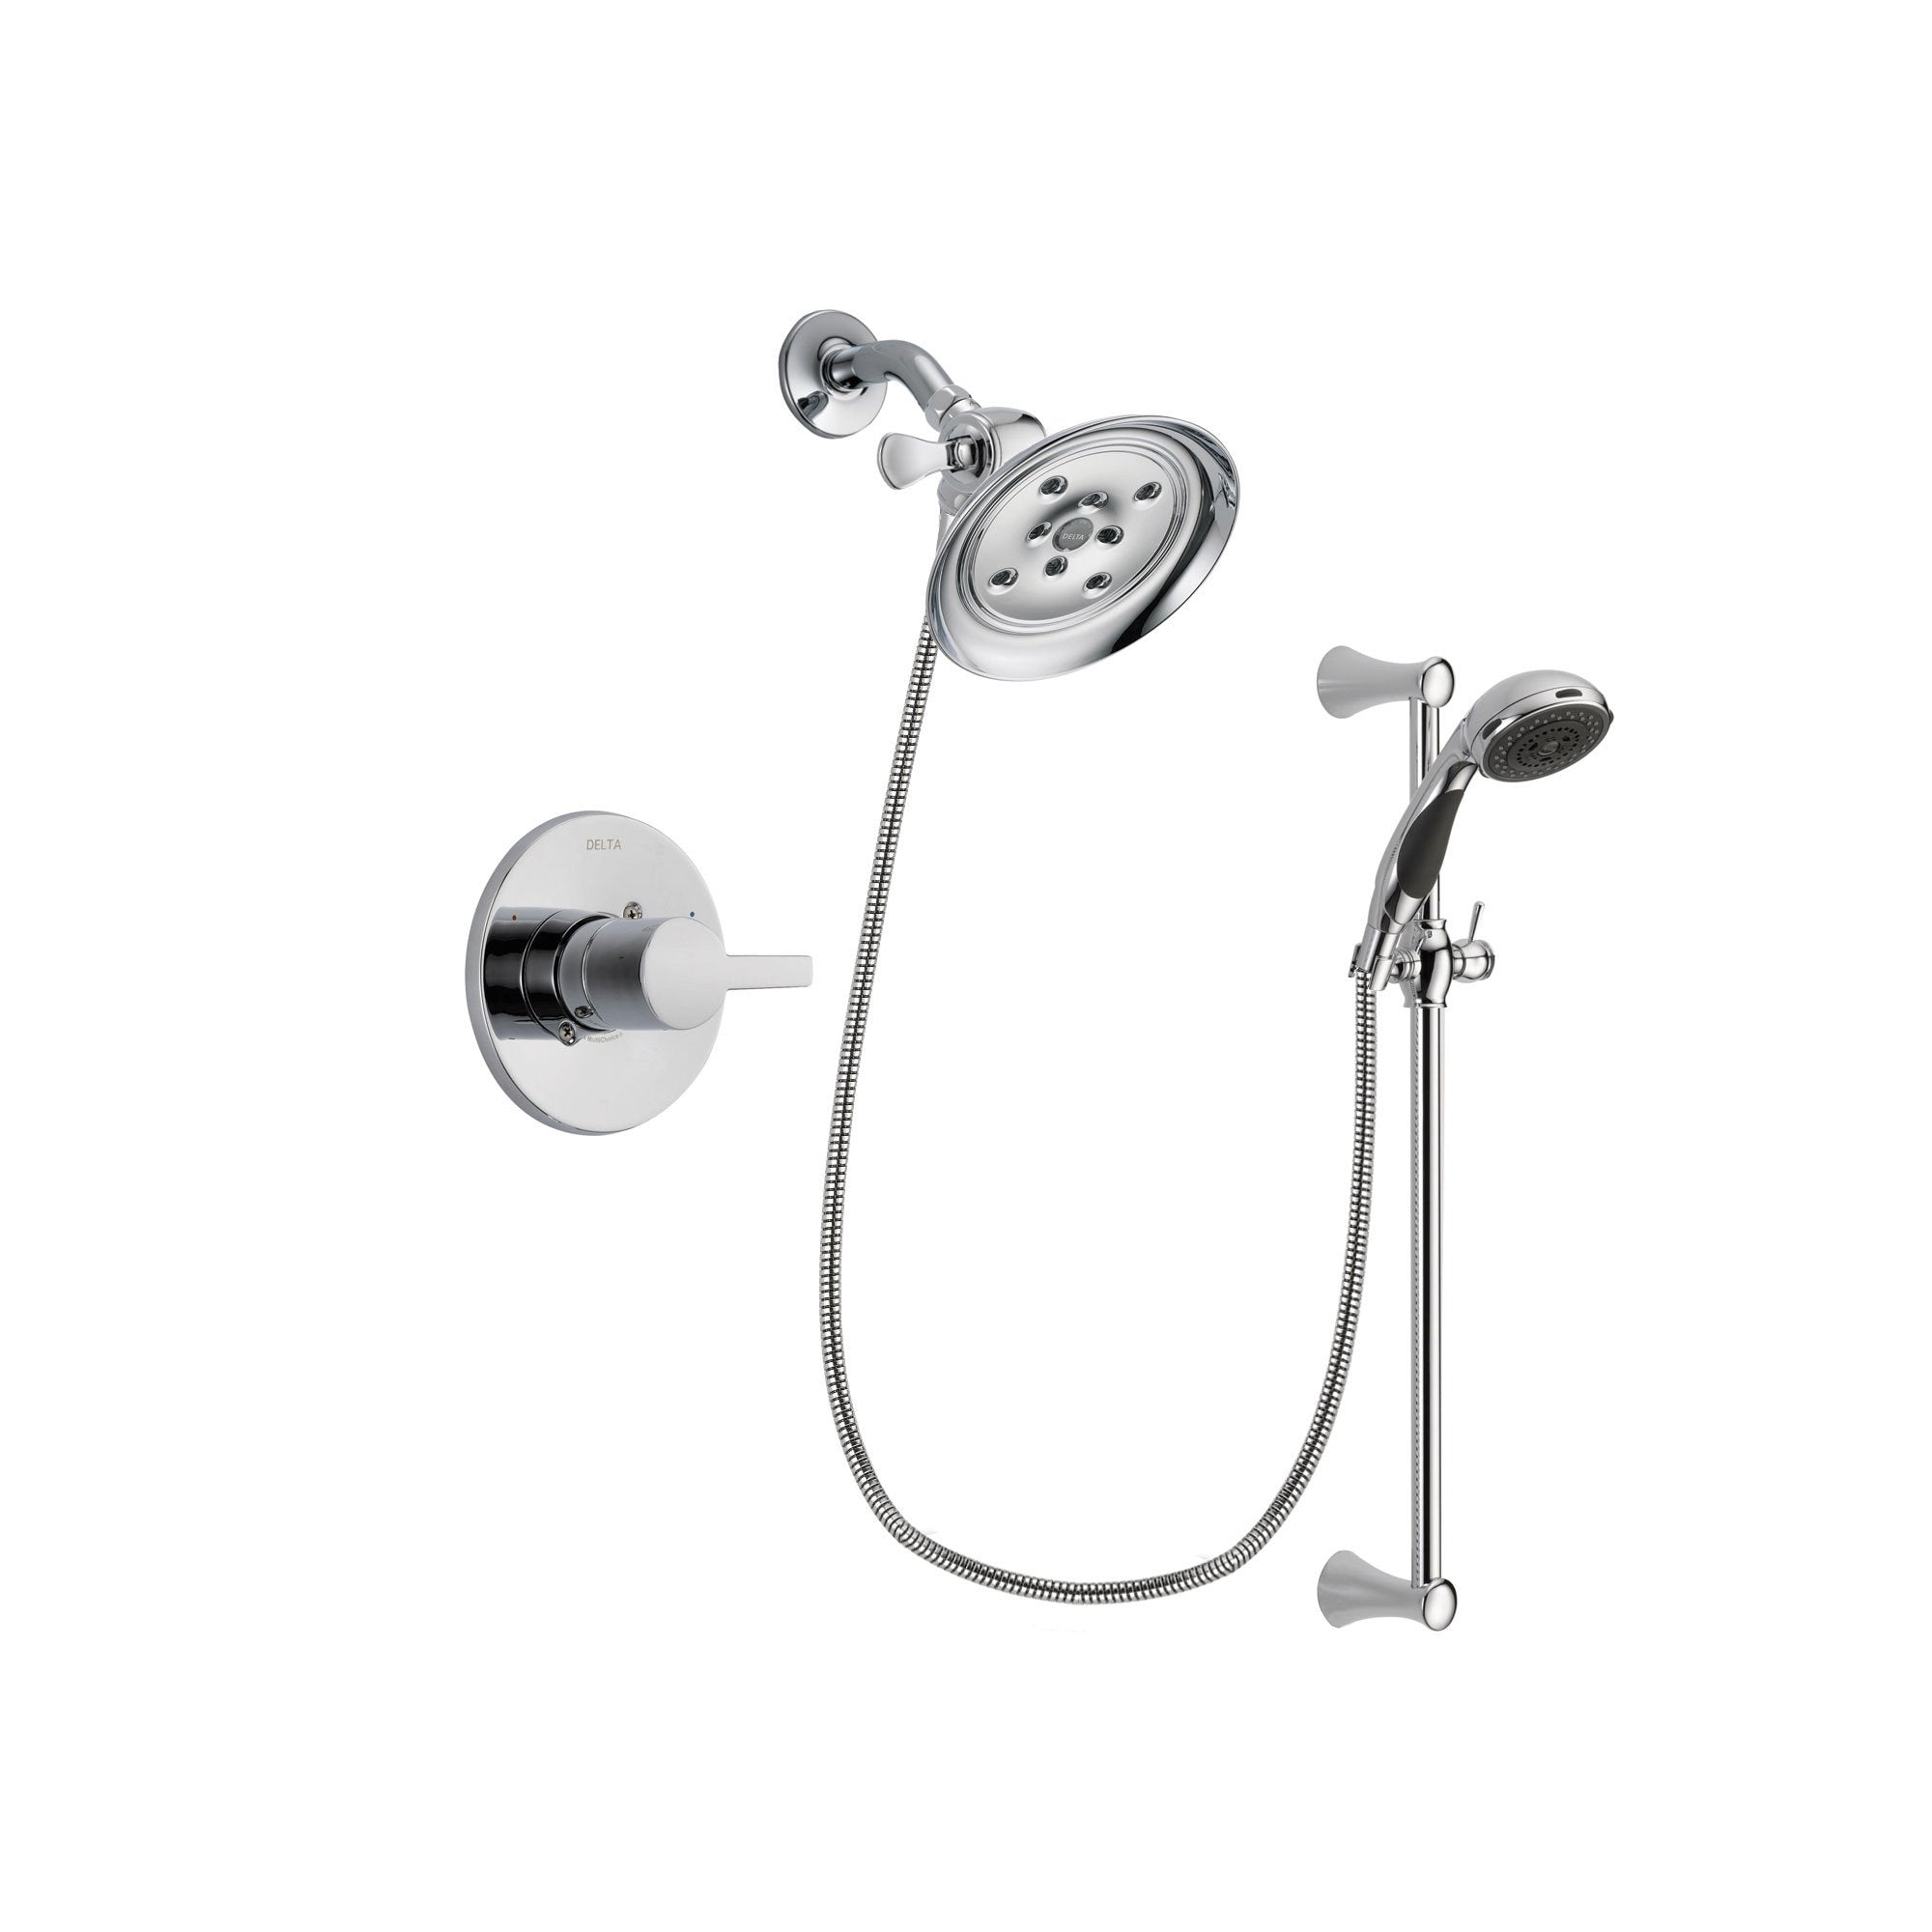 Delta Compel Chrome Shower Faucet System w/ Shower Head and Hand Shower DSP0780V